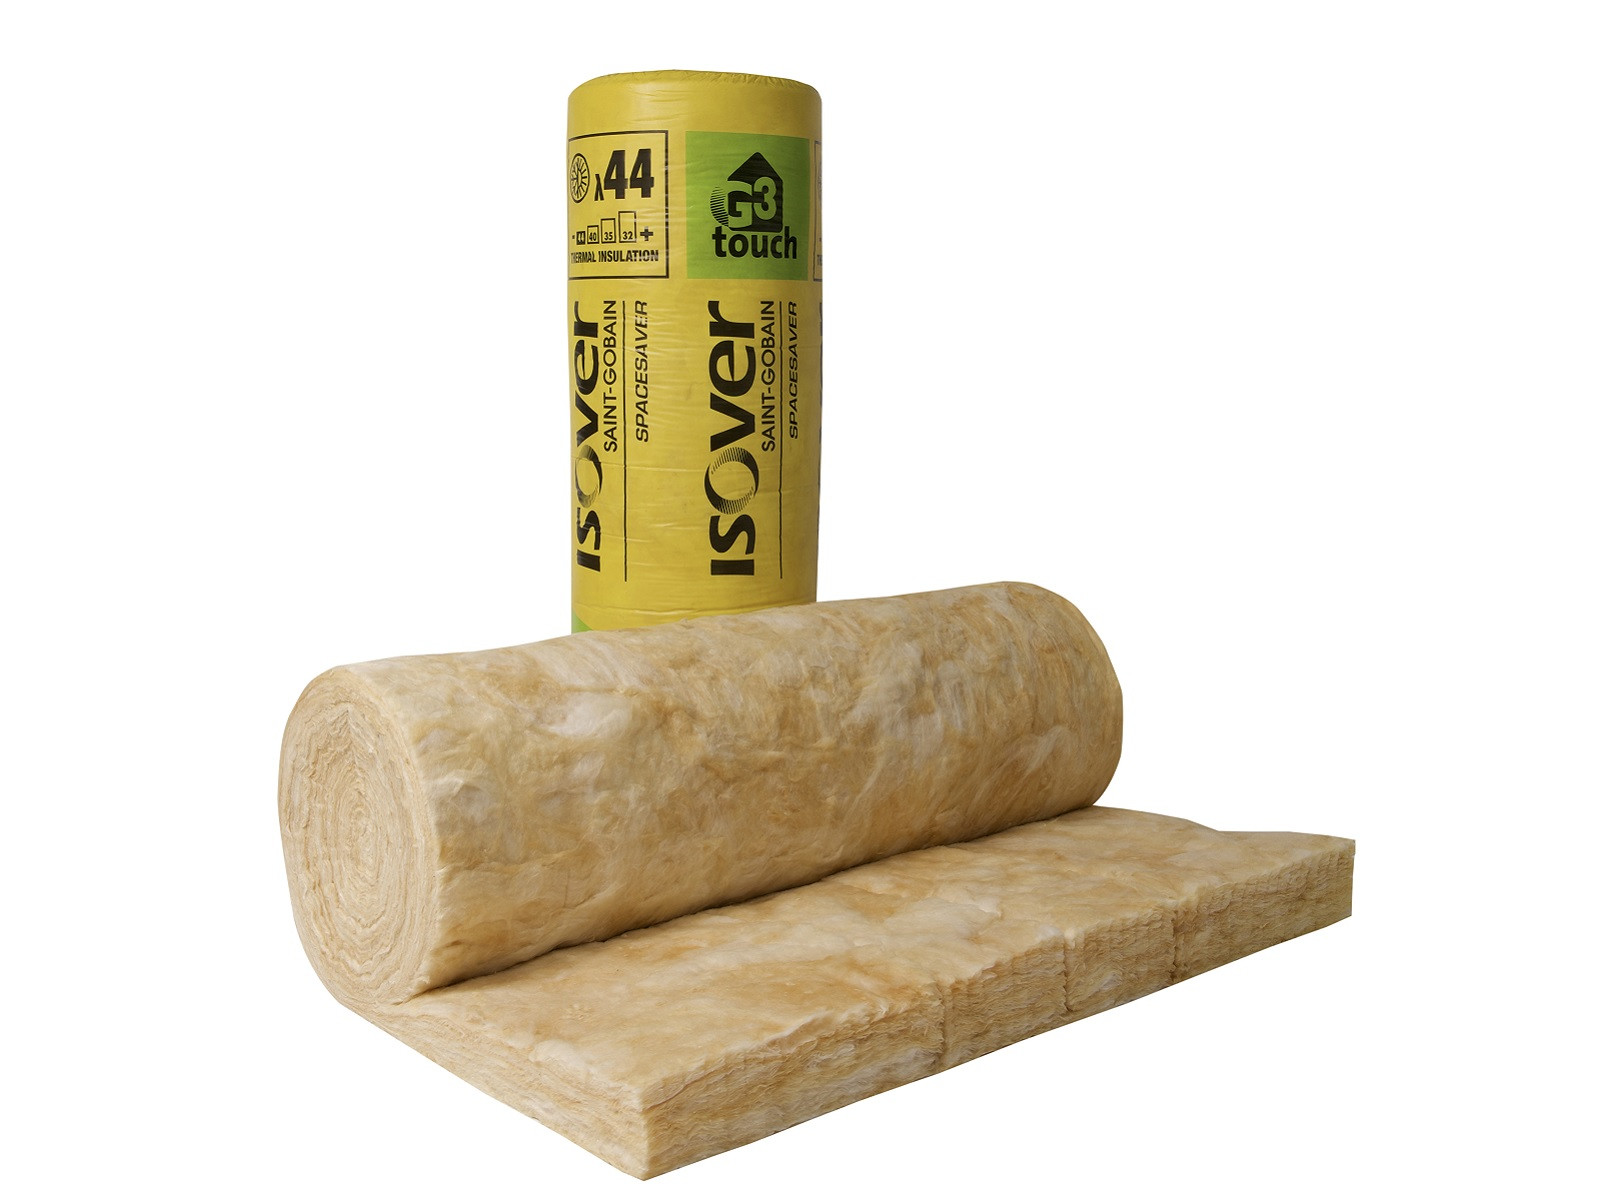 Spacesaver g3 touch mineral wool loft insulation 100mm 10 for 3 mineral wool insulation